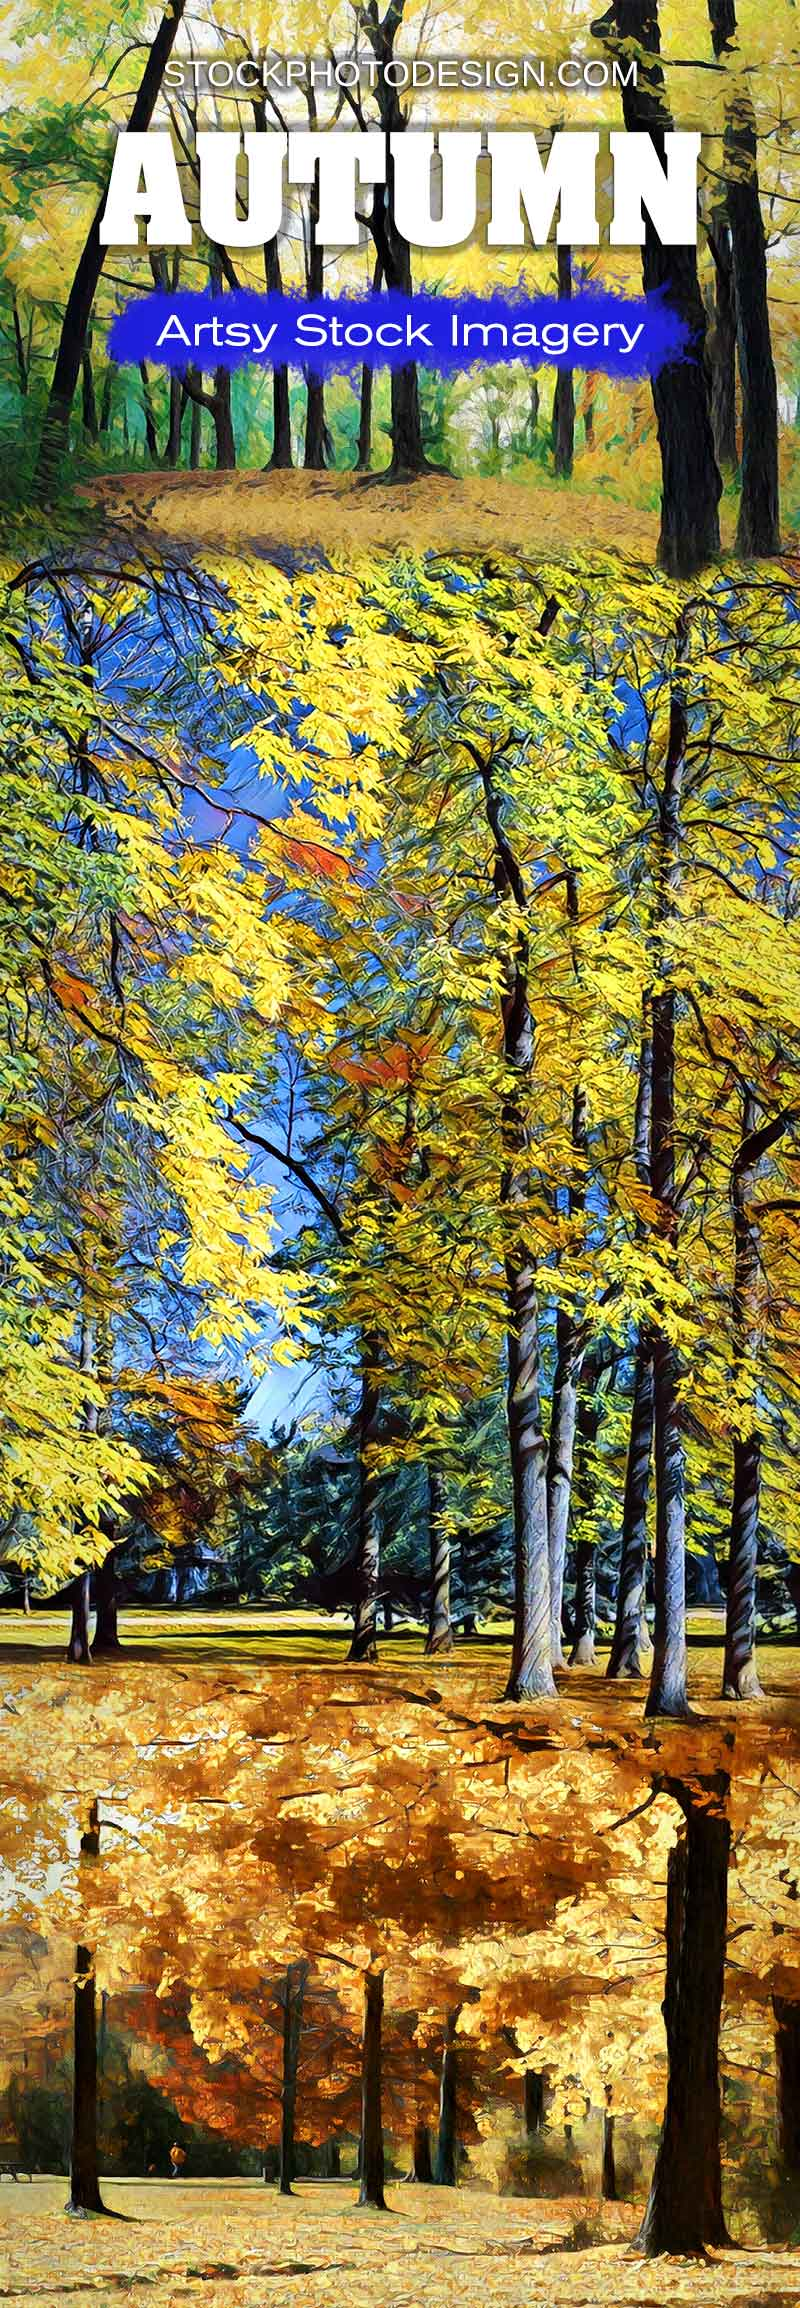 Artsy Stock Autumn Images at Great Prices. Stockphotodesign.com